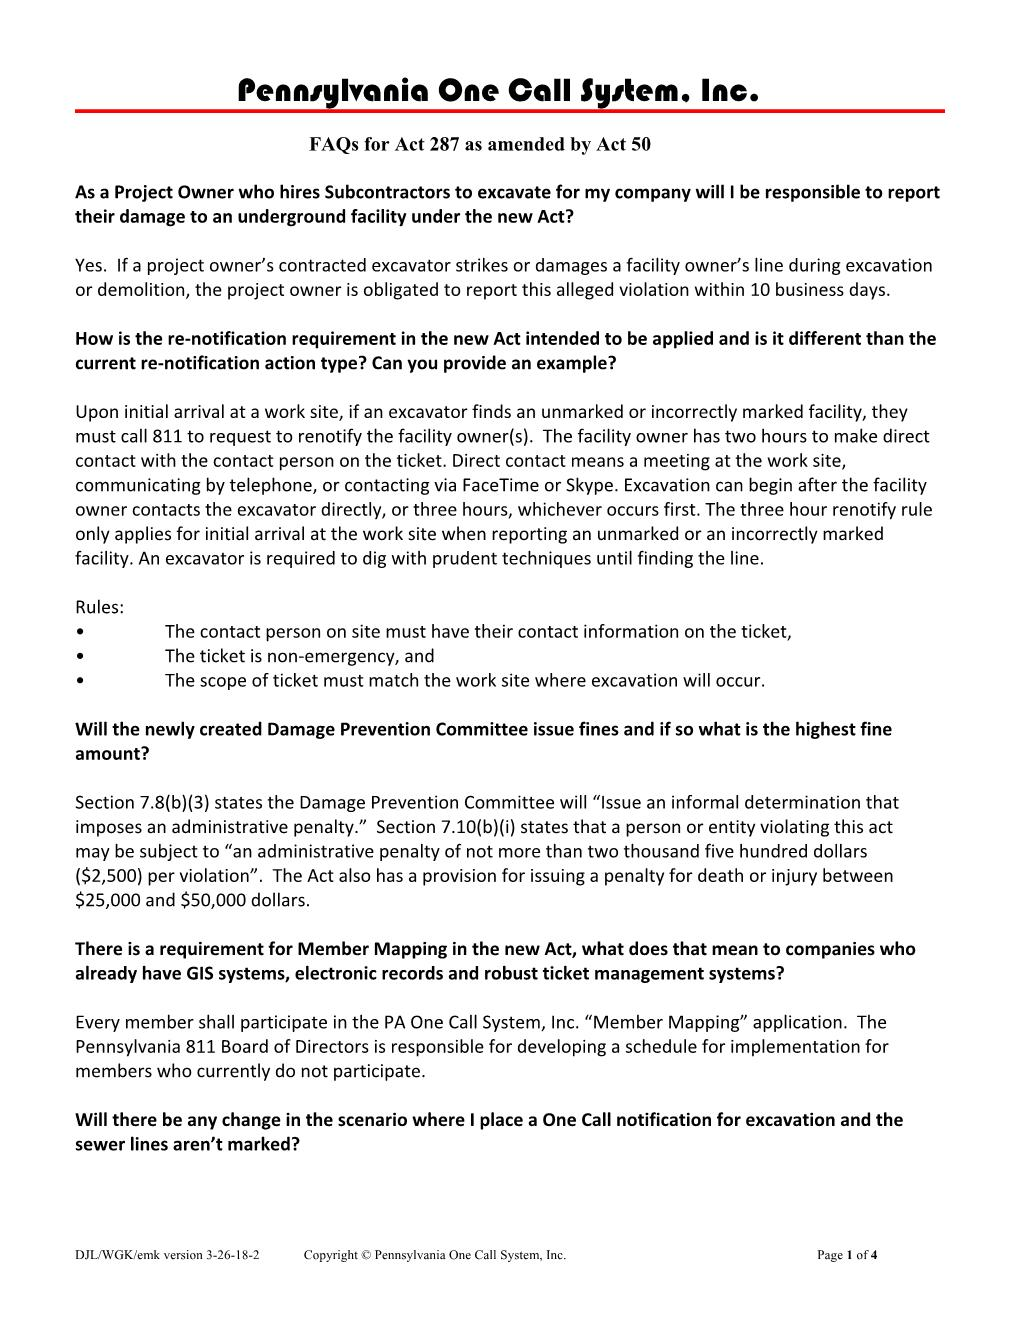 Act50FAQs 3-26-18-2 (1) Page 001.jpg